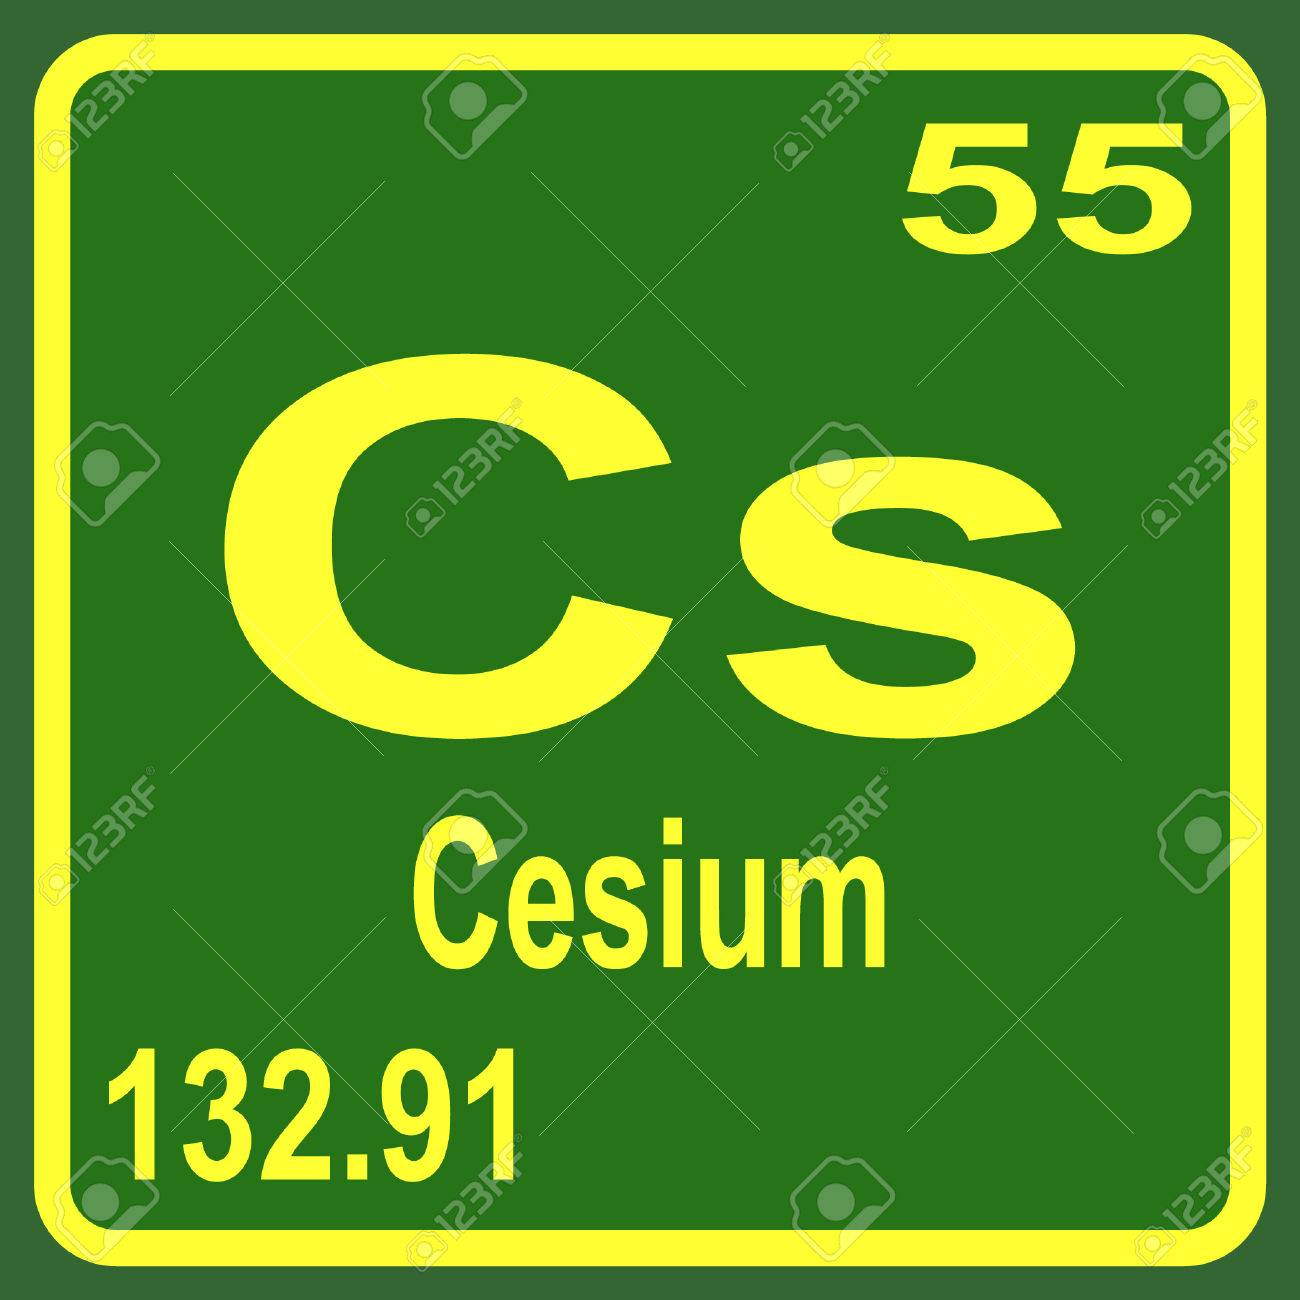 Periodic table of elements cesium royalty free cliparts vectors periodic table of elements cesium stock vector 53898008 gamestrikefo Image collections